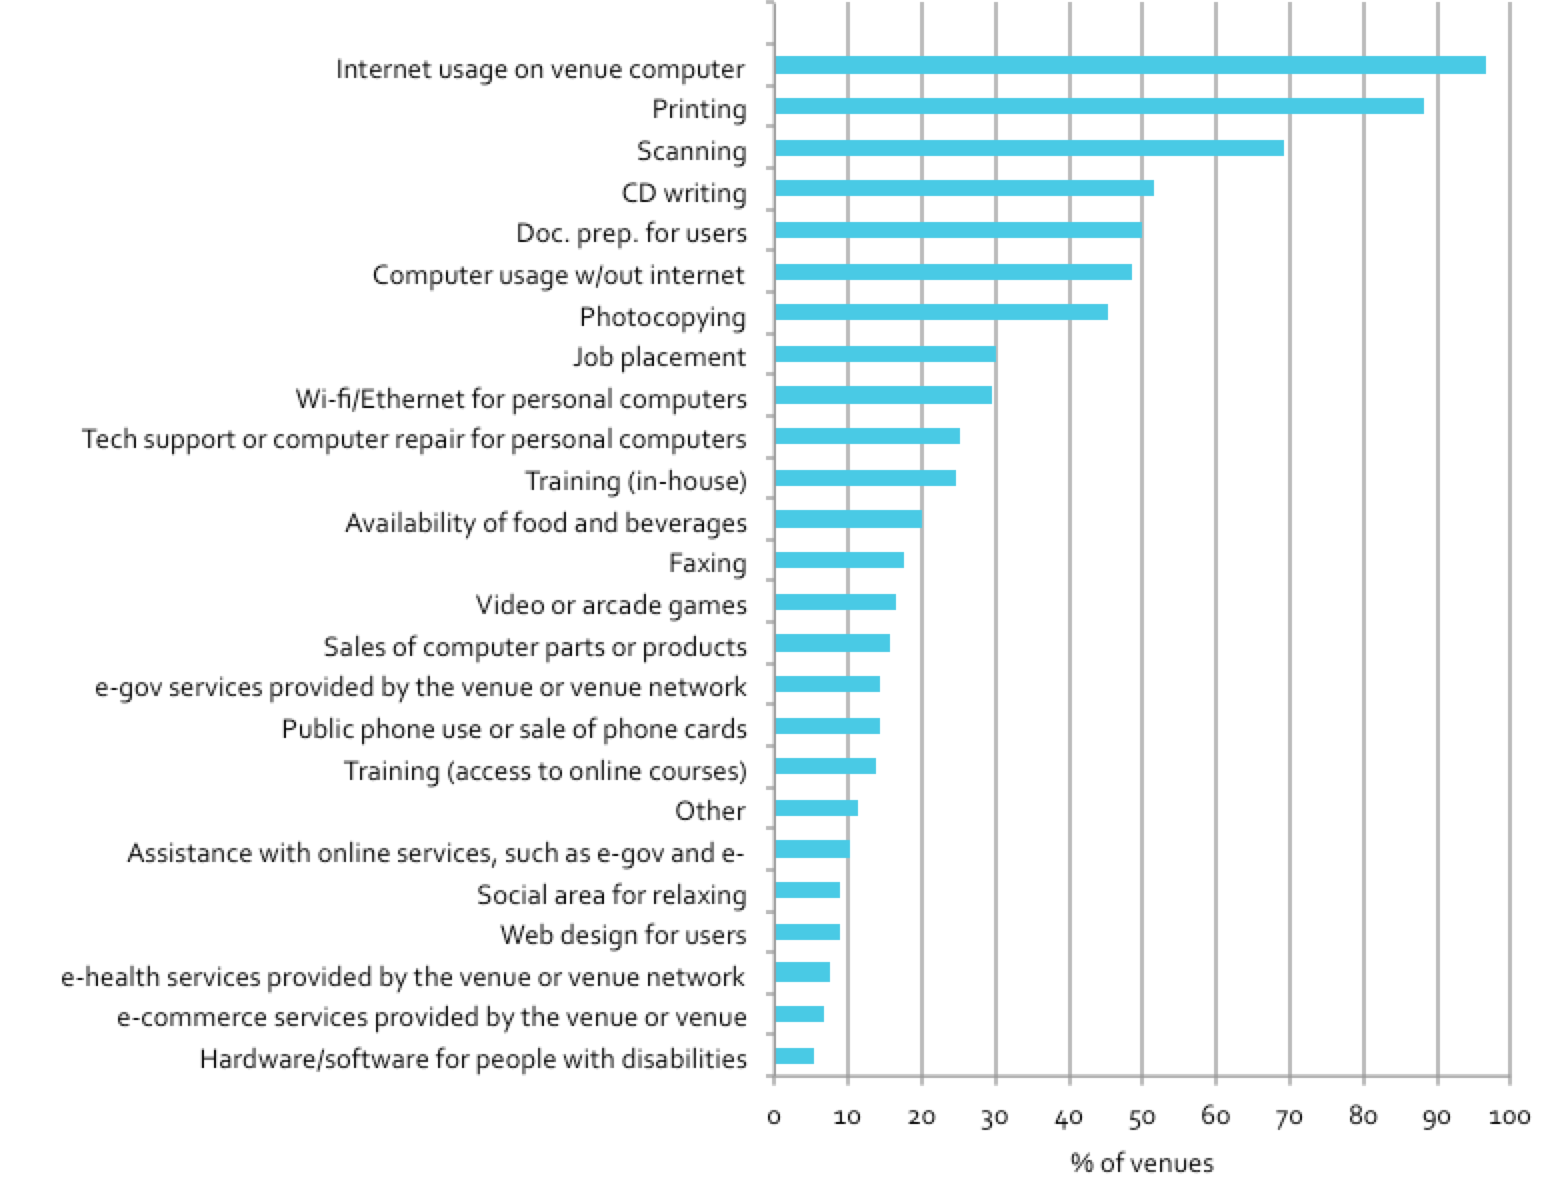 Figure 3.7: Services offered at public access venues (all venues)